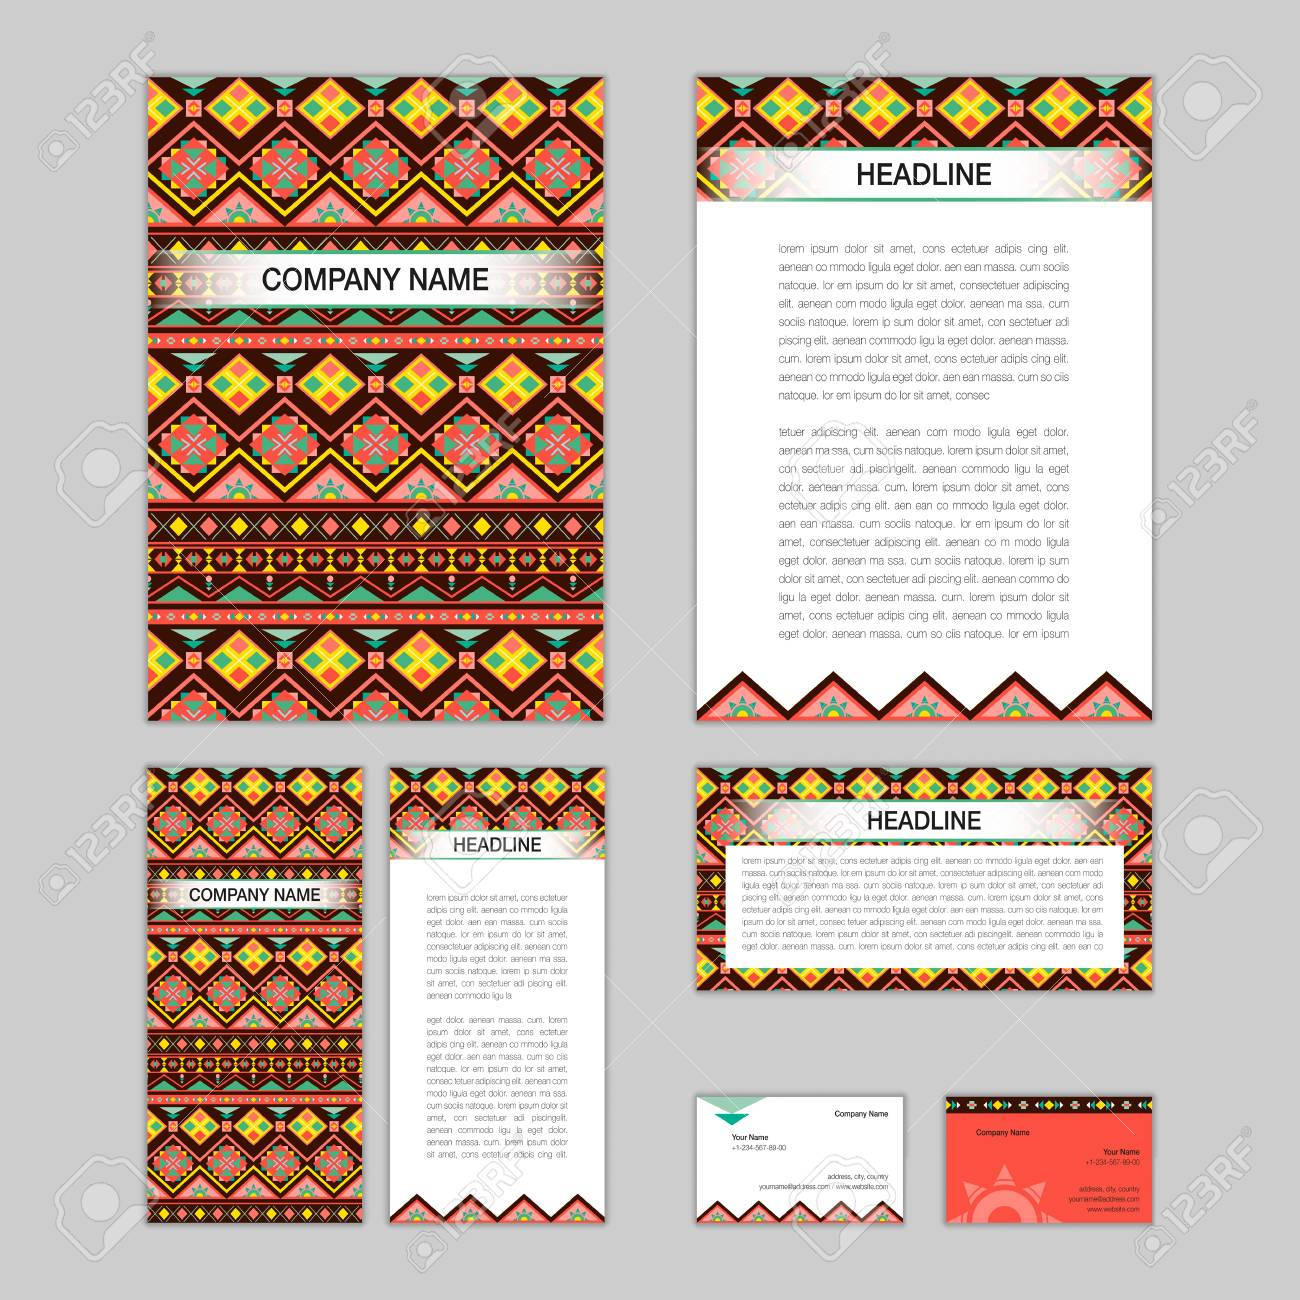 Set Of Abstract Brochure Templates. Leaflet, Banner, Flyer, Business Card.  Ethnic